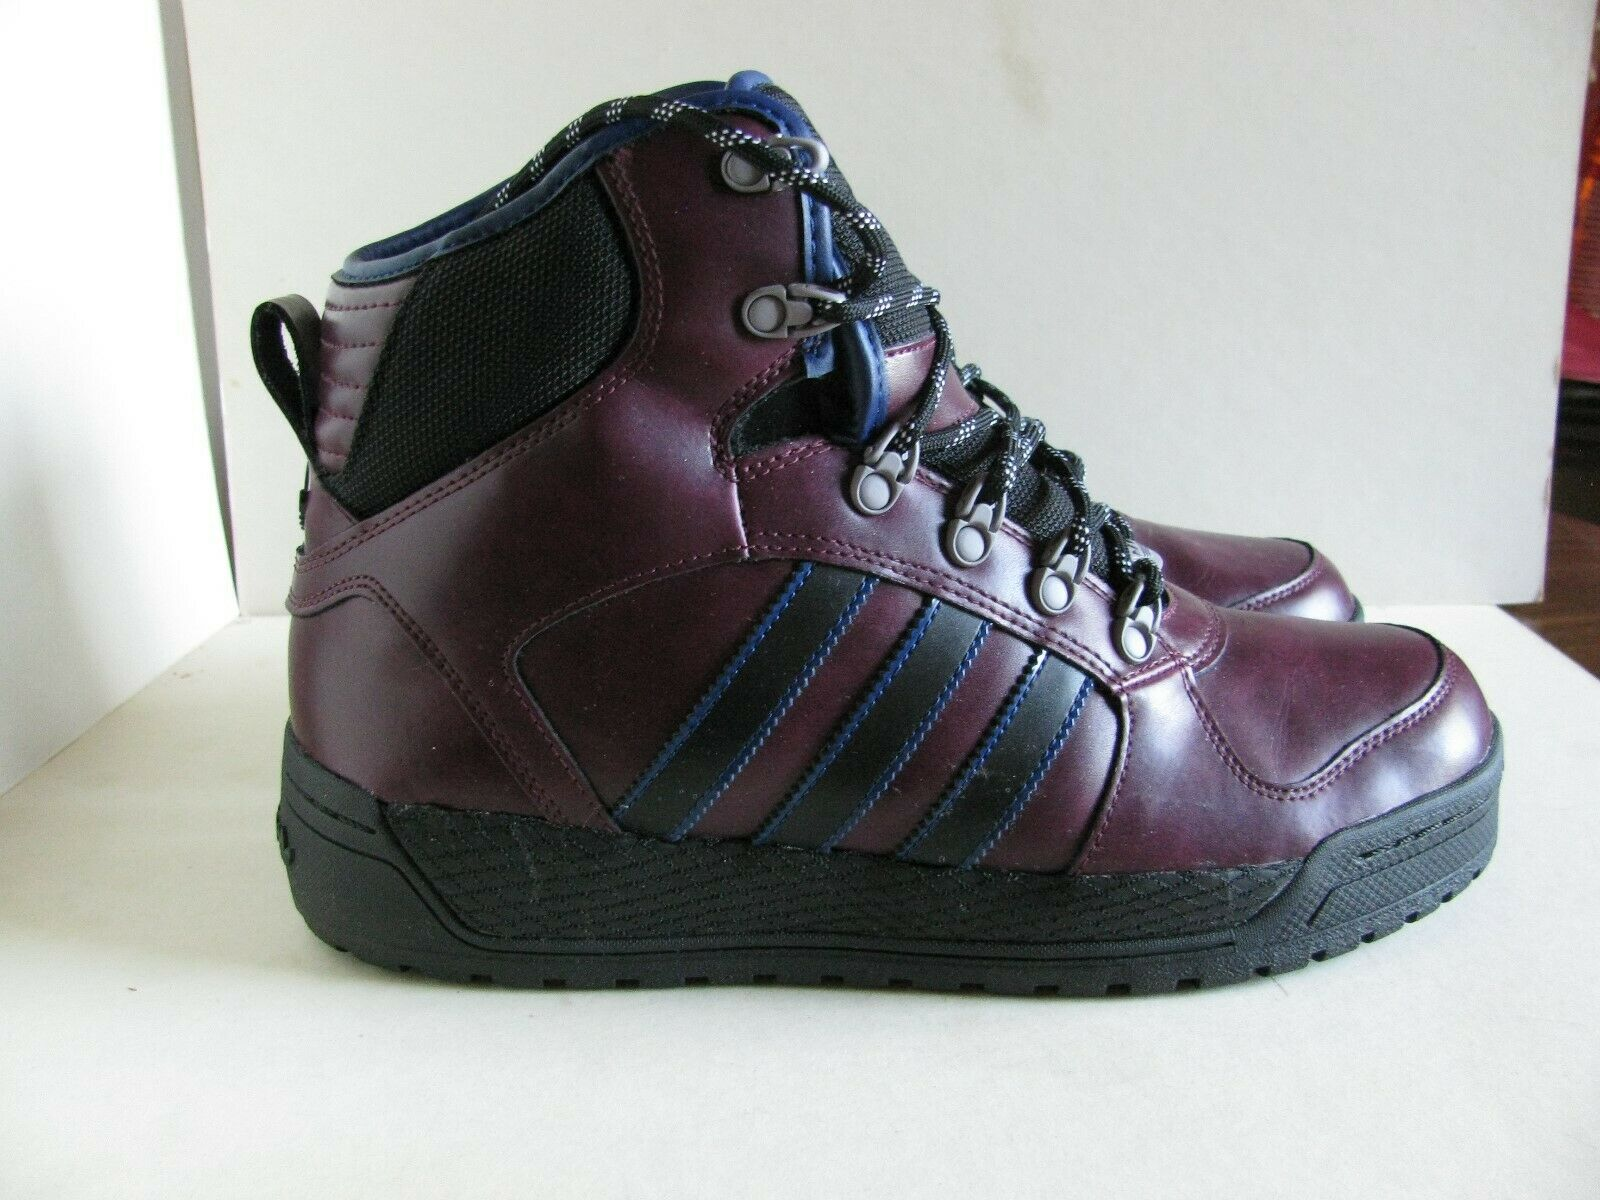 Adidas Boots Size 9 Sample (Q32956)